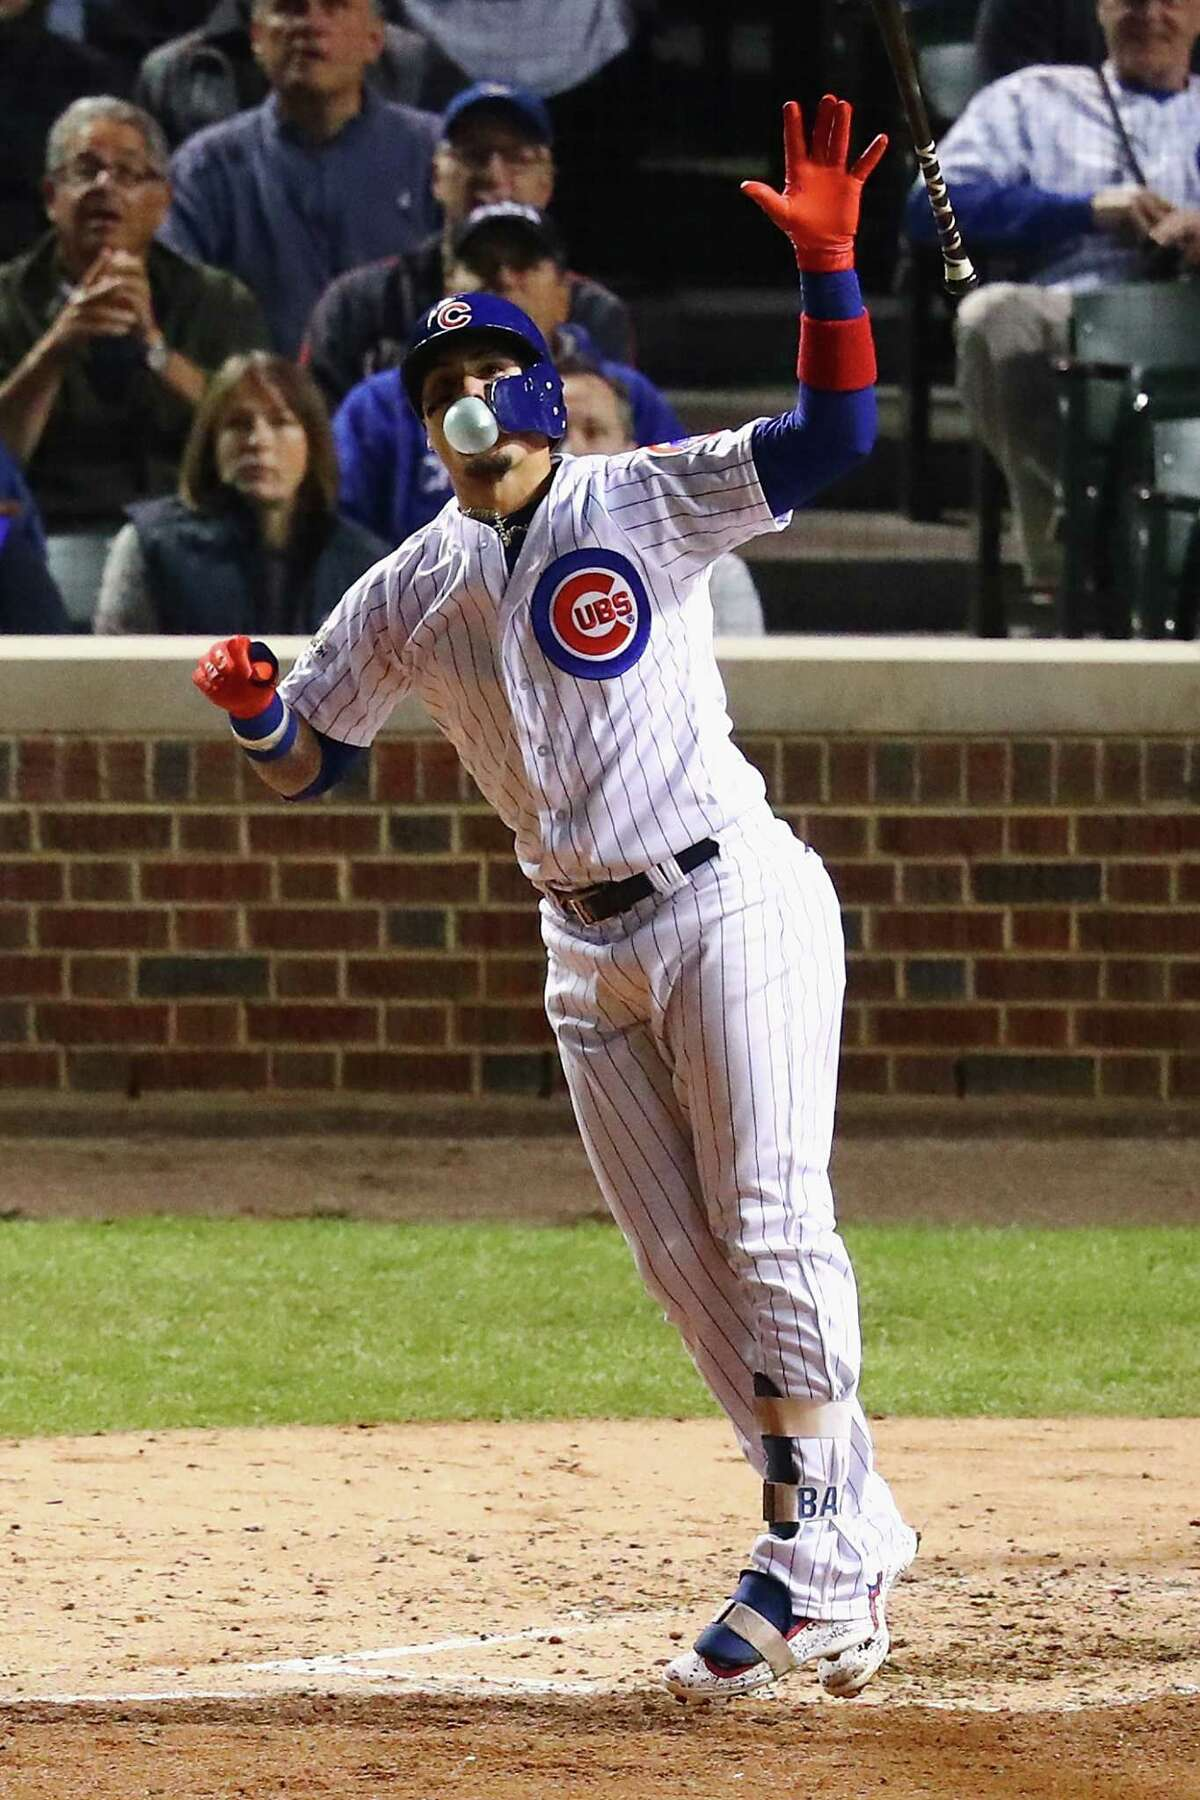 Chicago Cubs Odds: +1,100